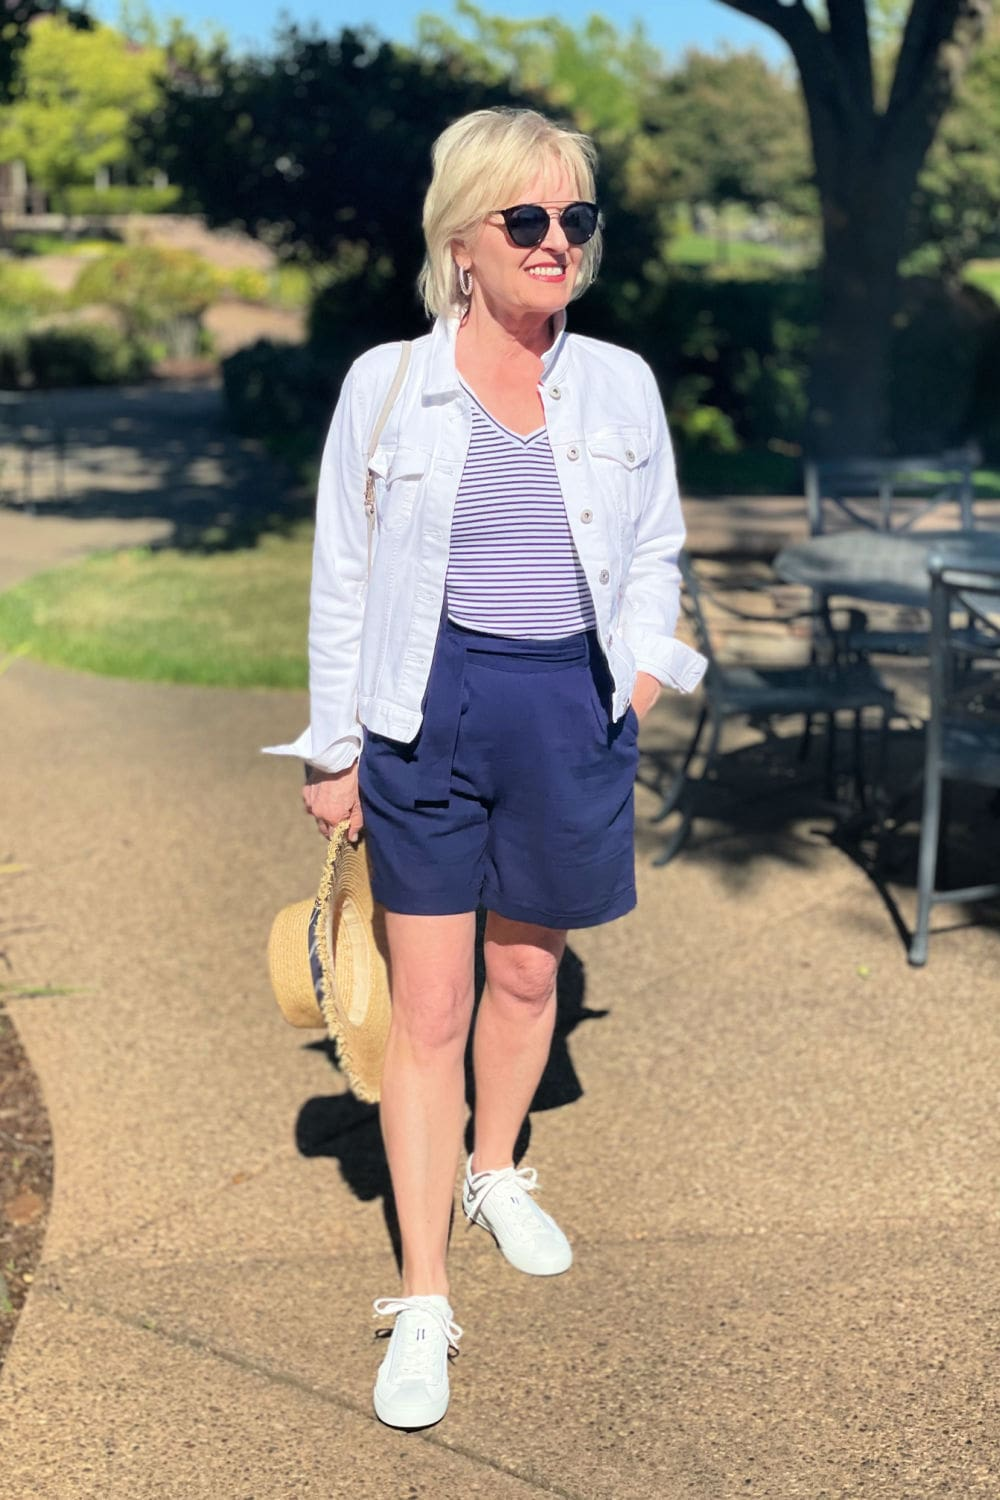 over 50 blogger wearing navy shorts with white sneakers and striped tee